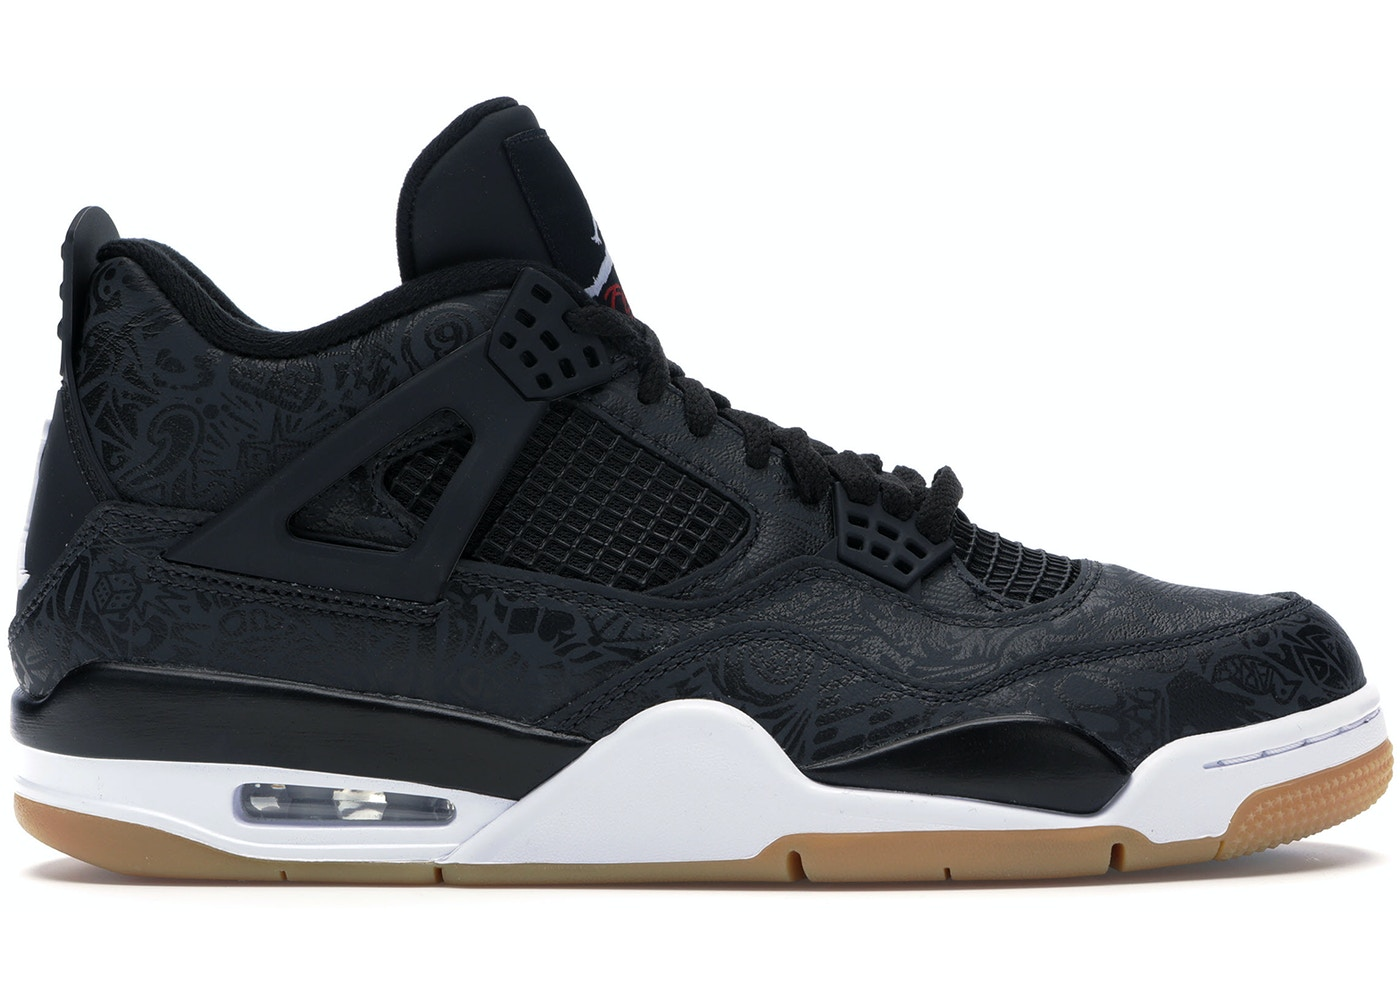 huge discount 5628d 3fea1 Jordan 4 Retro Laser Black Gum - CI1184-001